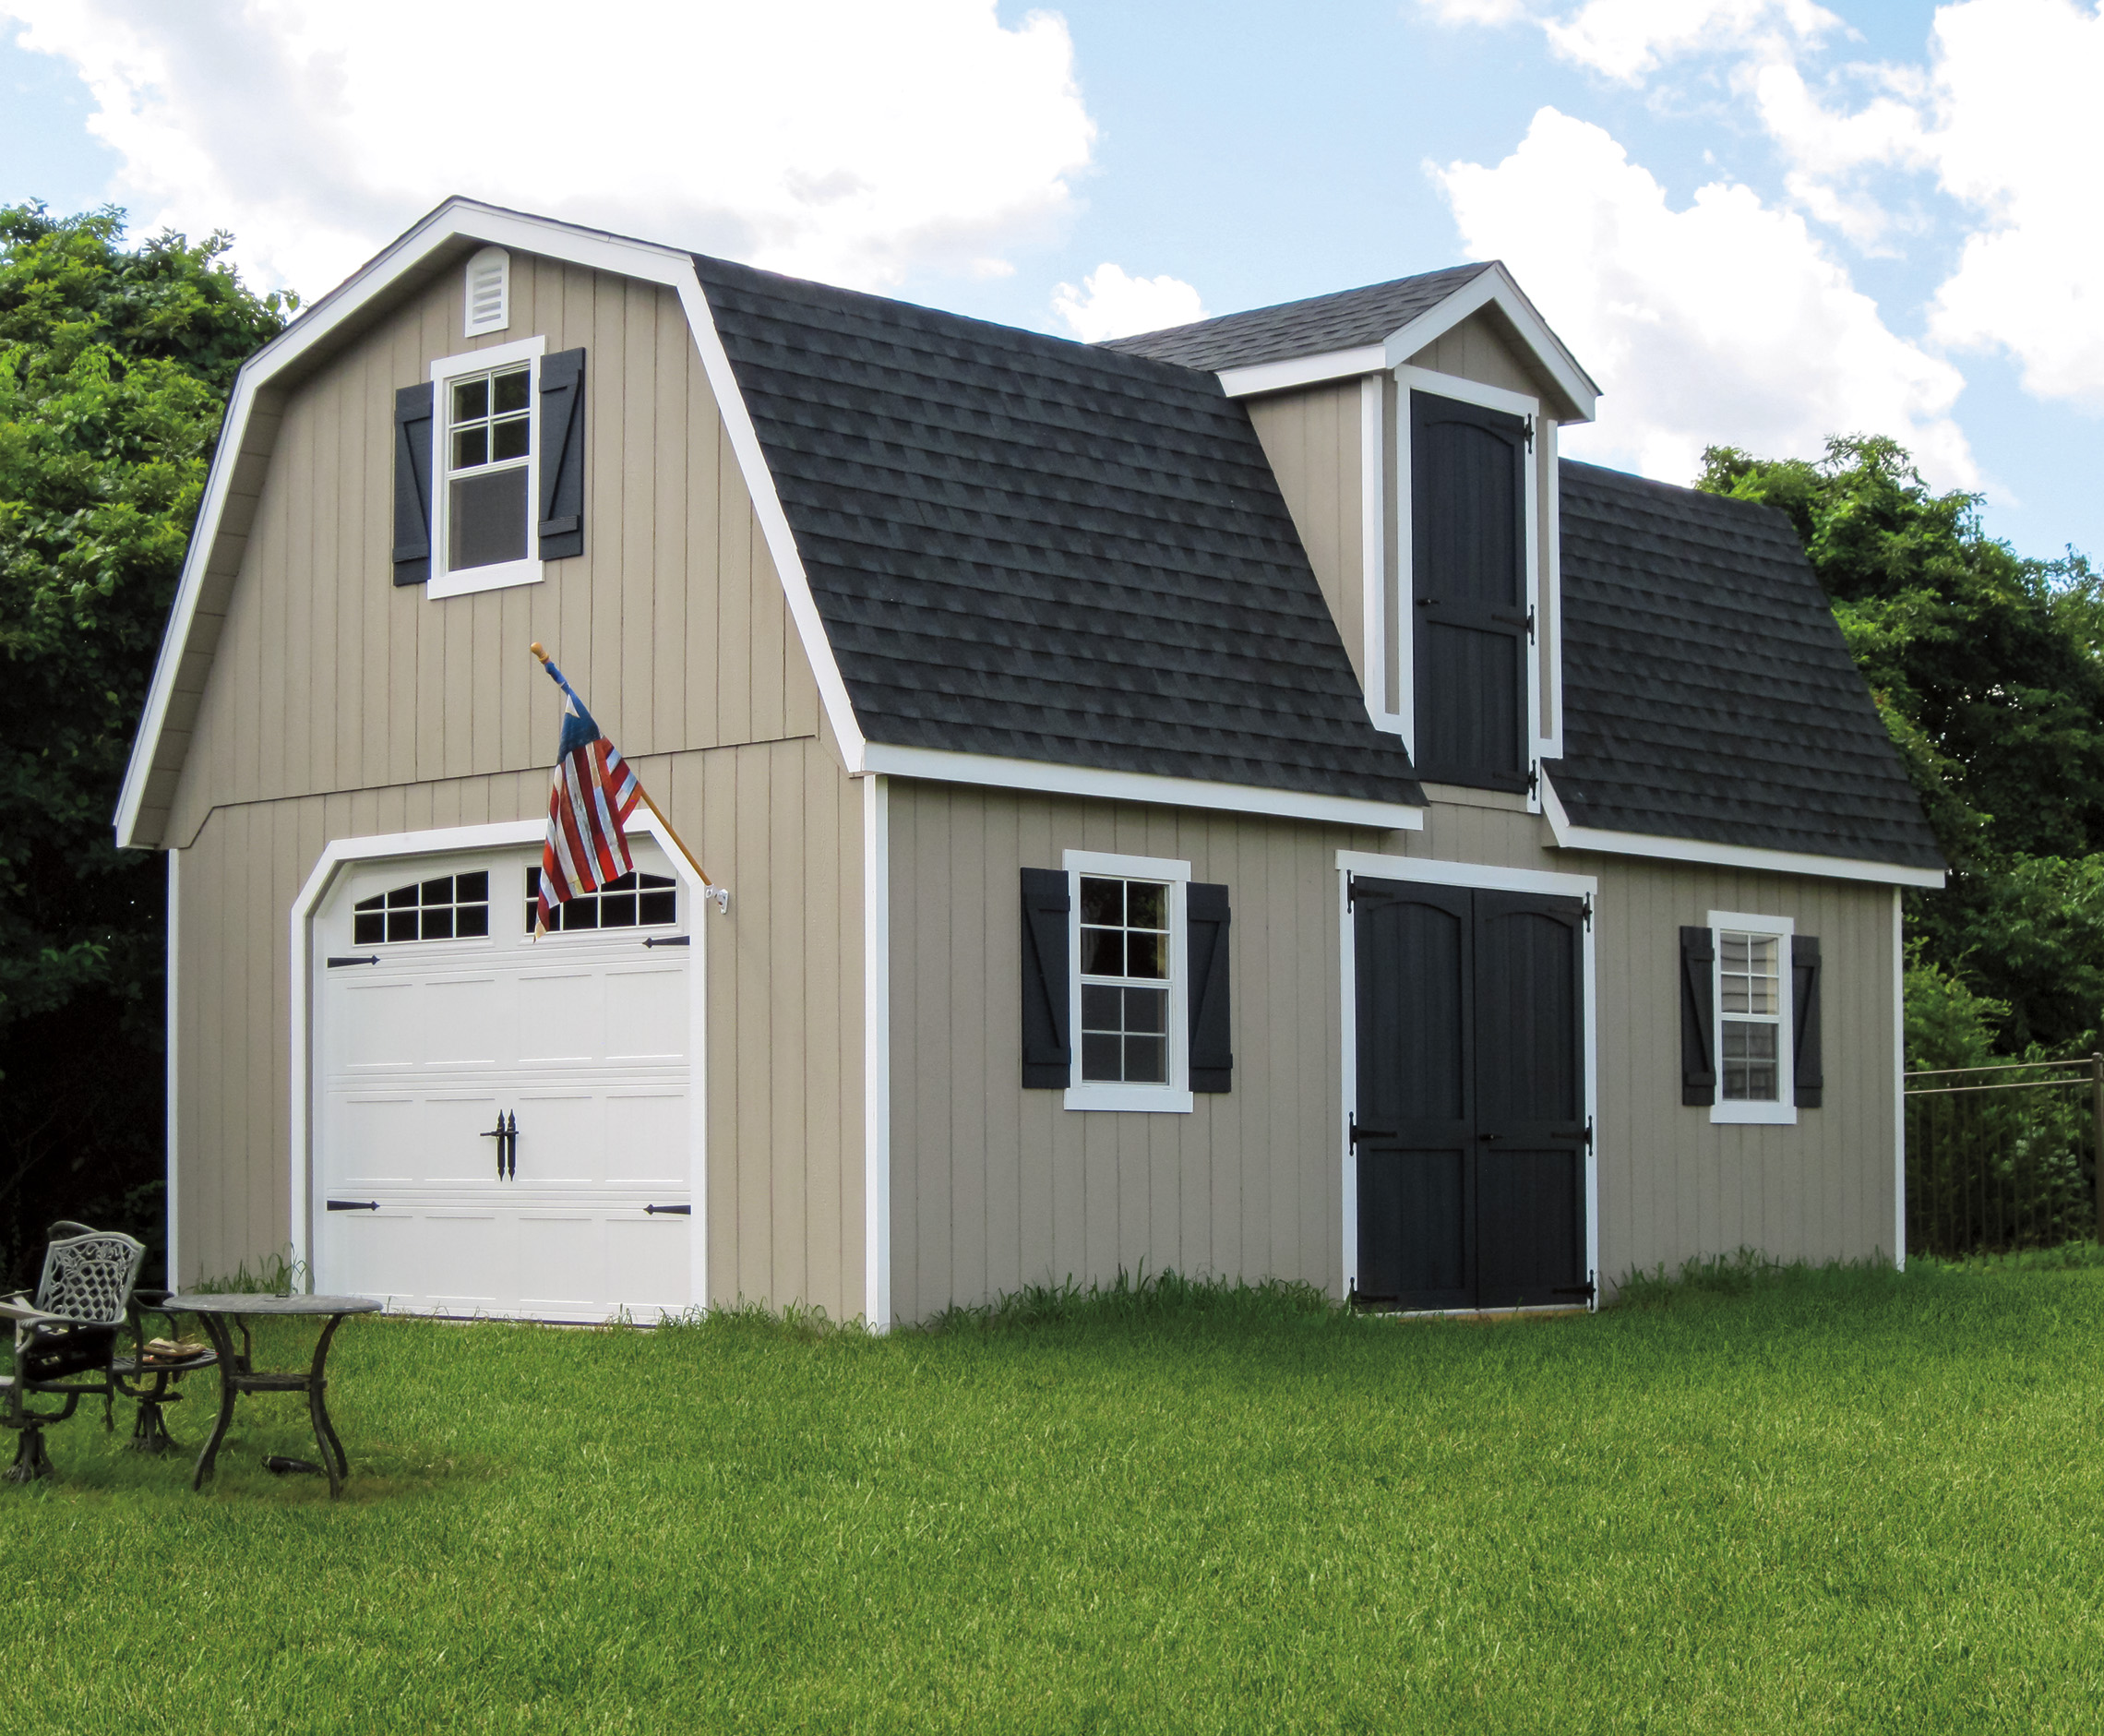 Two story tan wooden siding with gray shingles garage